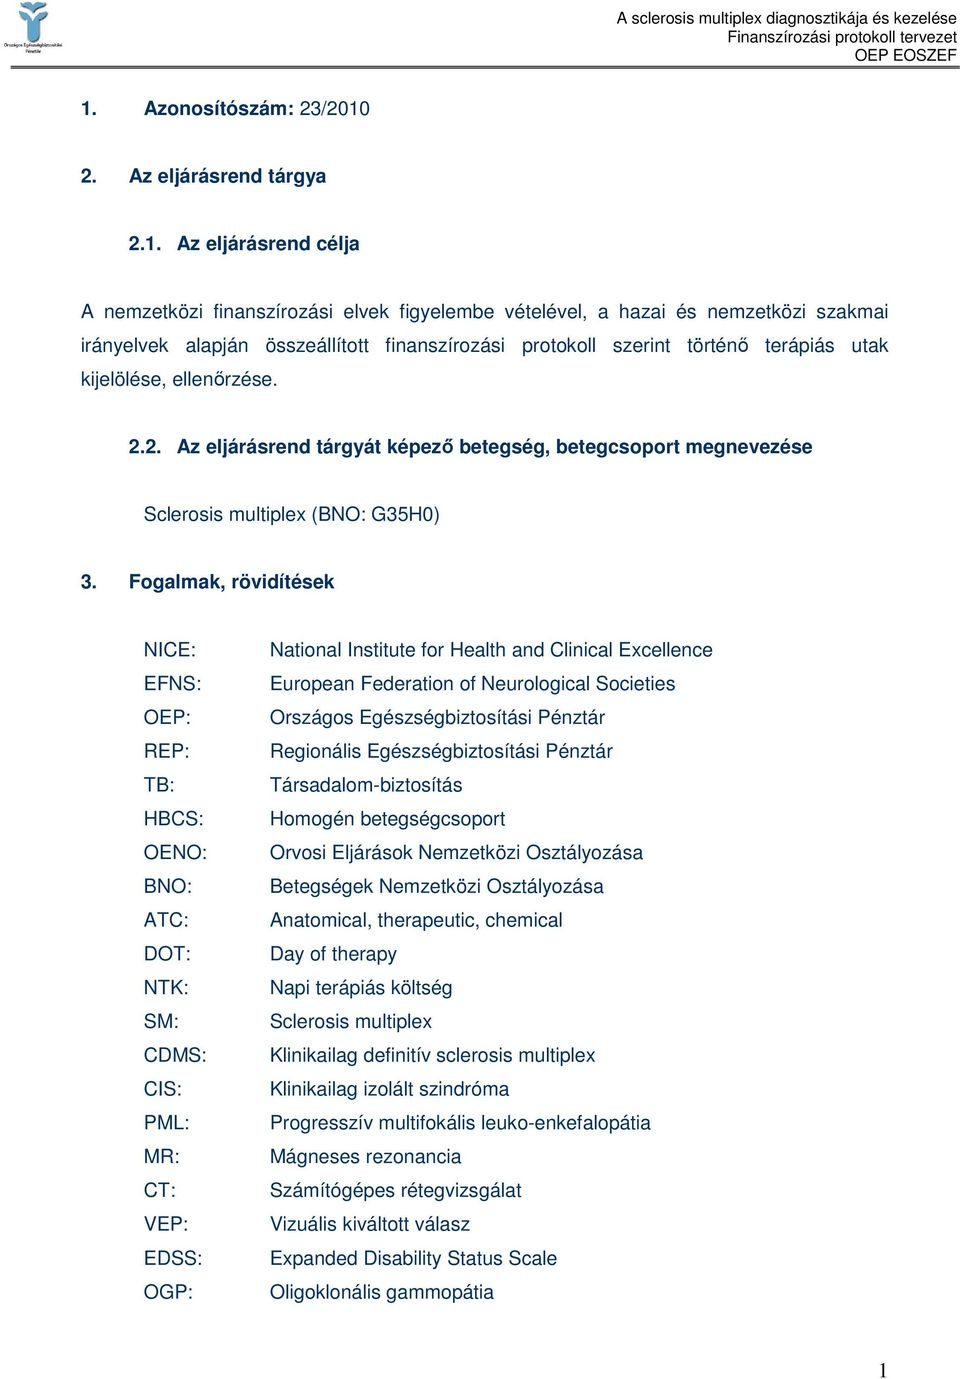 Fogalmak, rövidítések NICE: EFNS: OEP: REP: TB: HBCS: OENO: BNO: ATC: DOT: NTK: SM: CDMS: CIS: PML: MR: CT: VEP: EDSS: OGP: National Institute for Health and Clinical Excellence European Federation